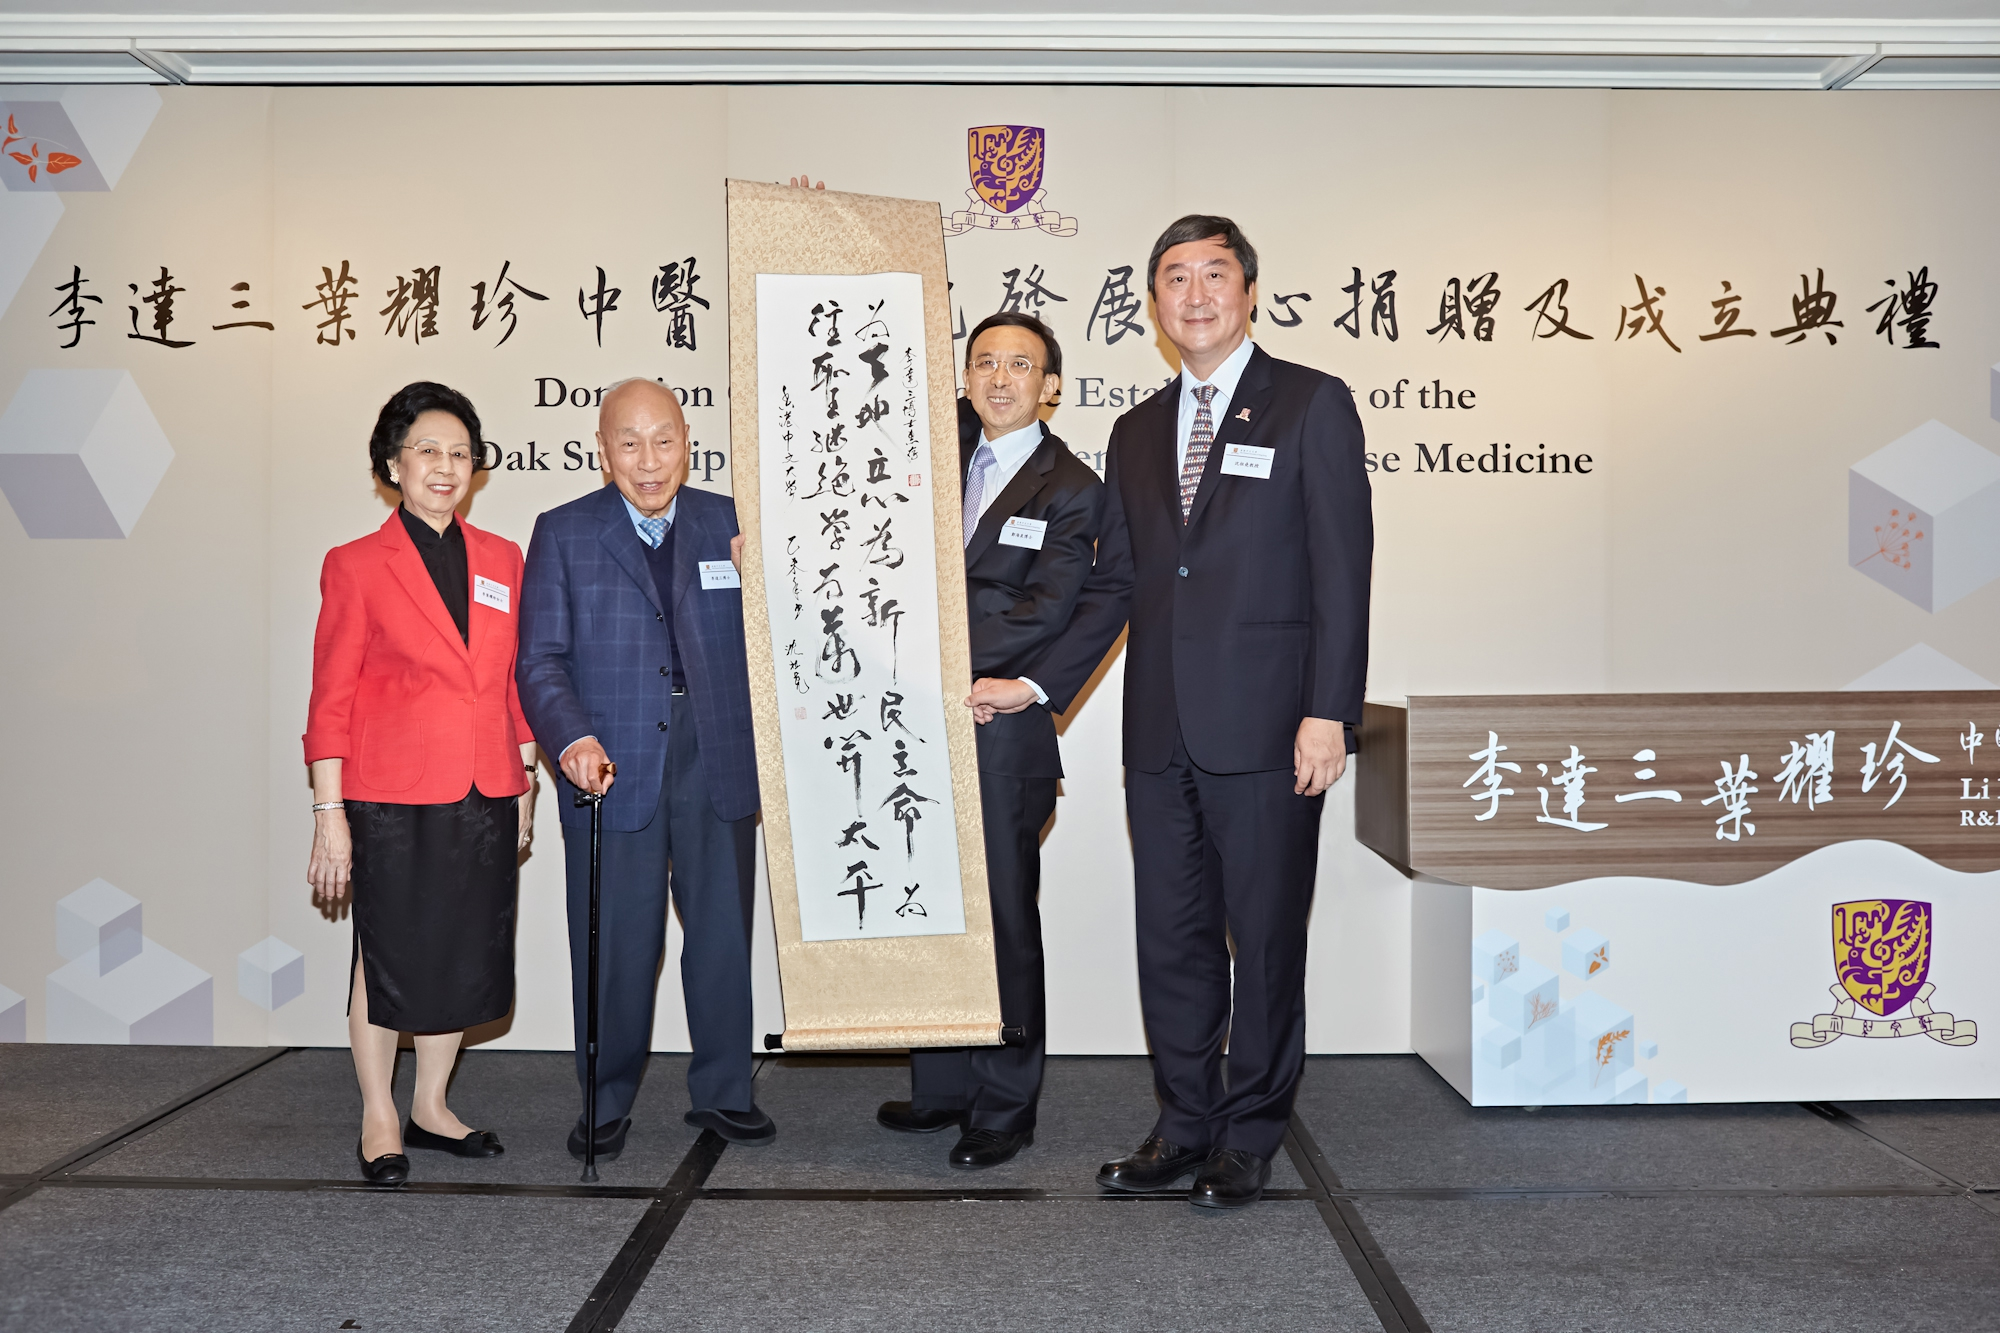 Dr. Vincent Cheng and Prof. Joseph Sung present a calligraphy written by Professor Sung to Dr. and Mrs. Li Dak Sum.